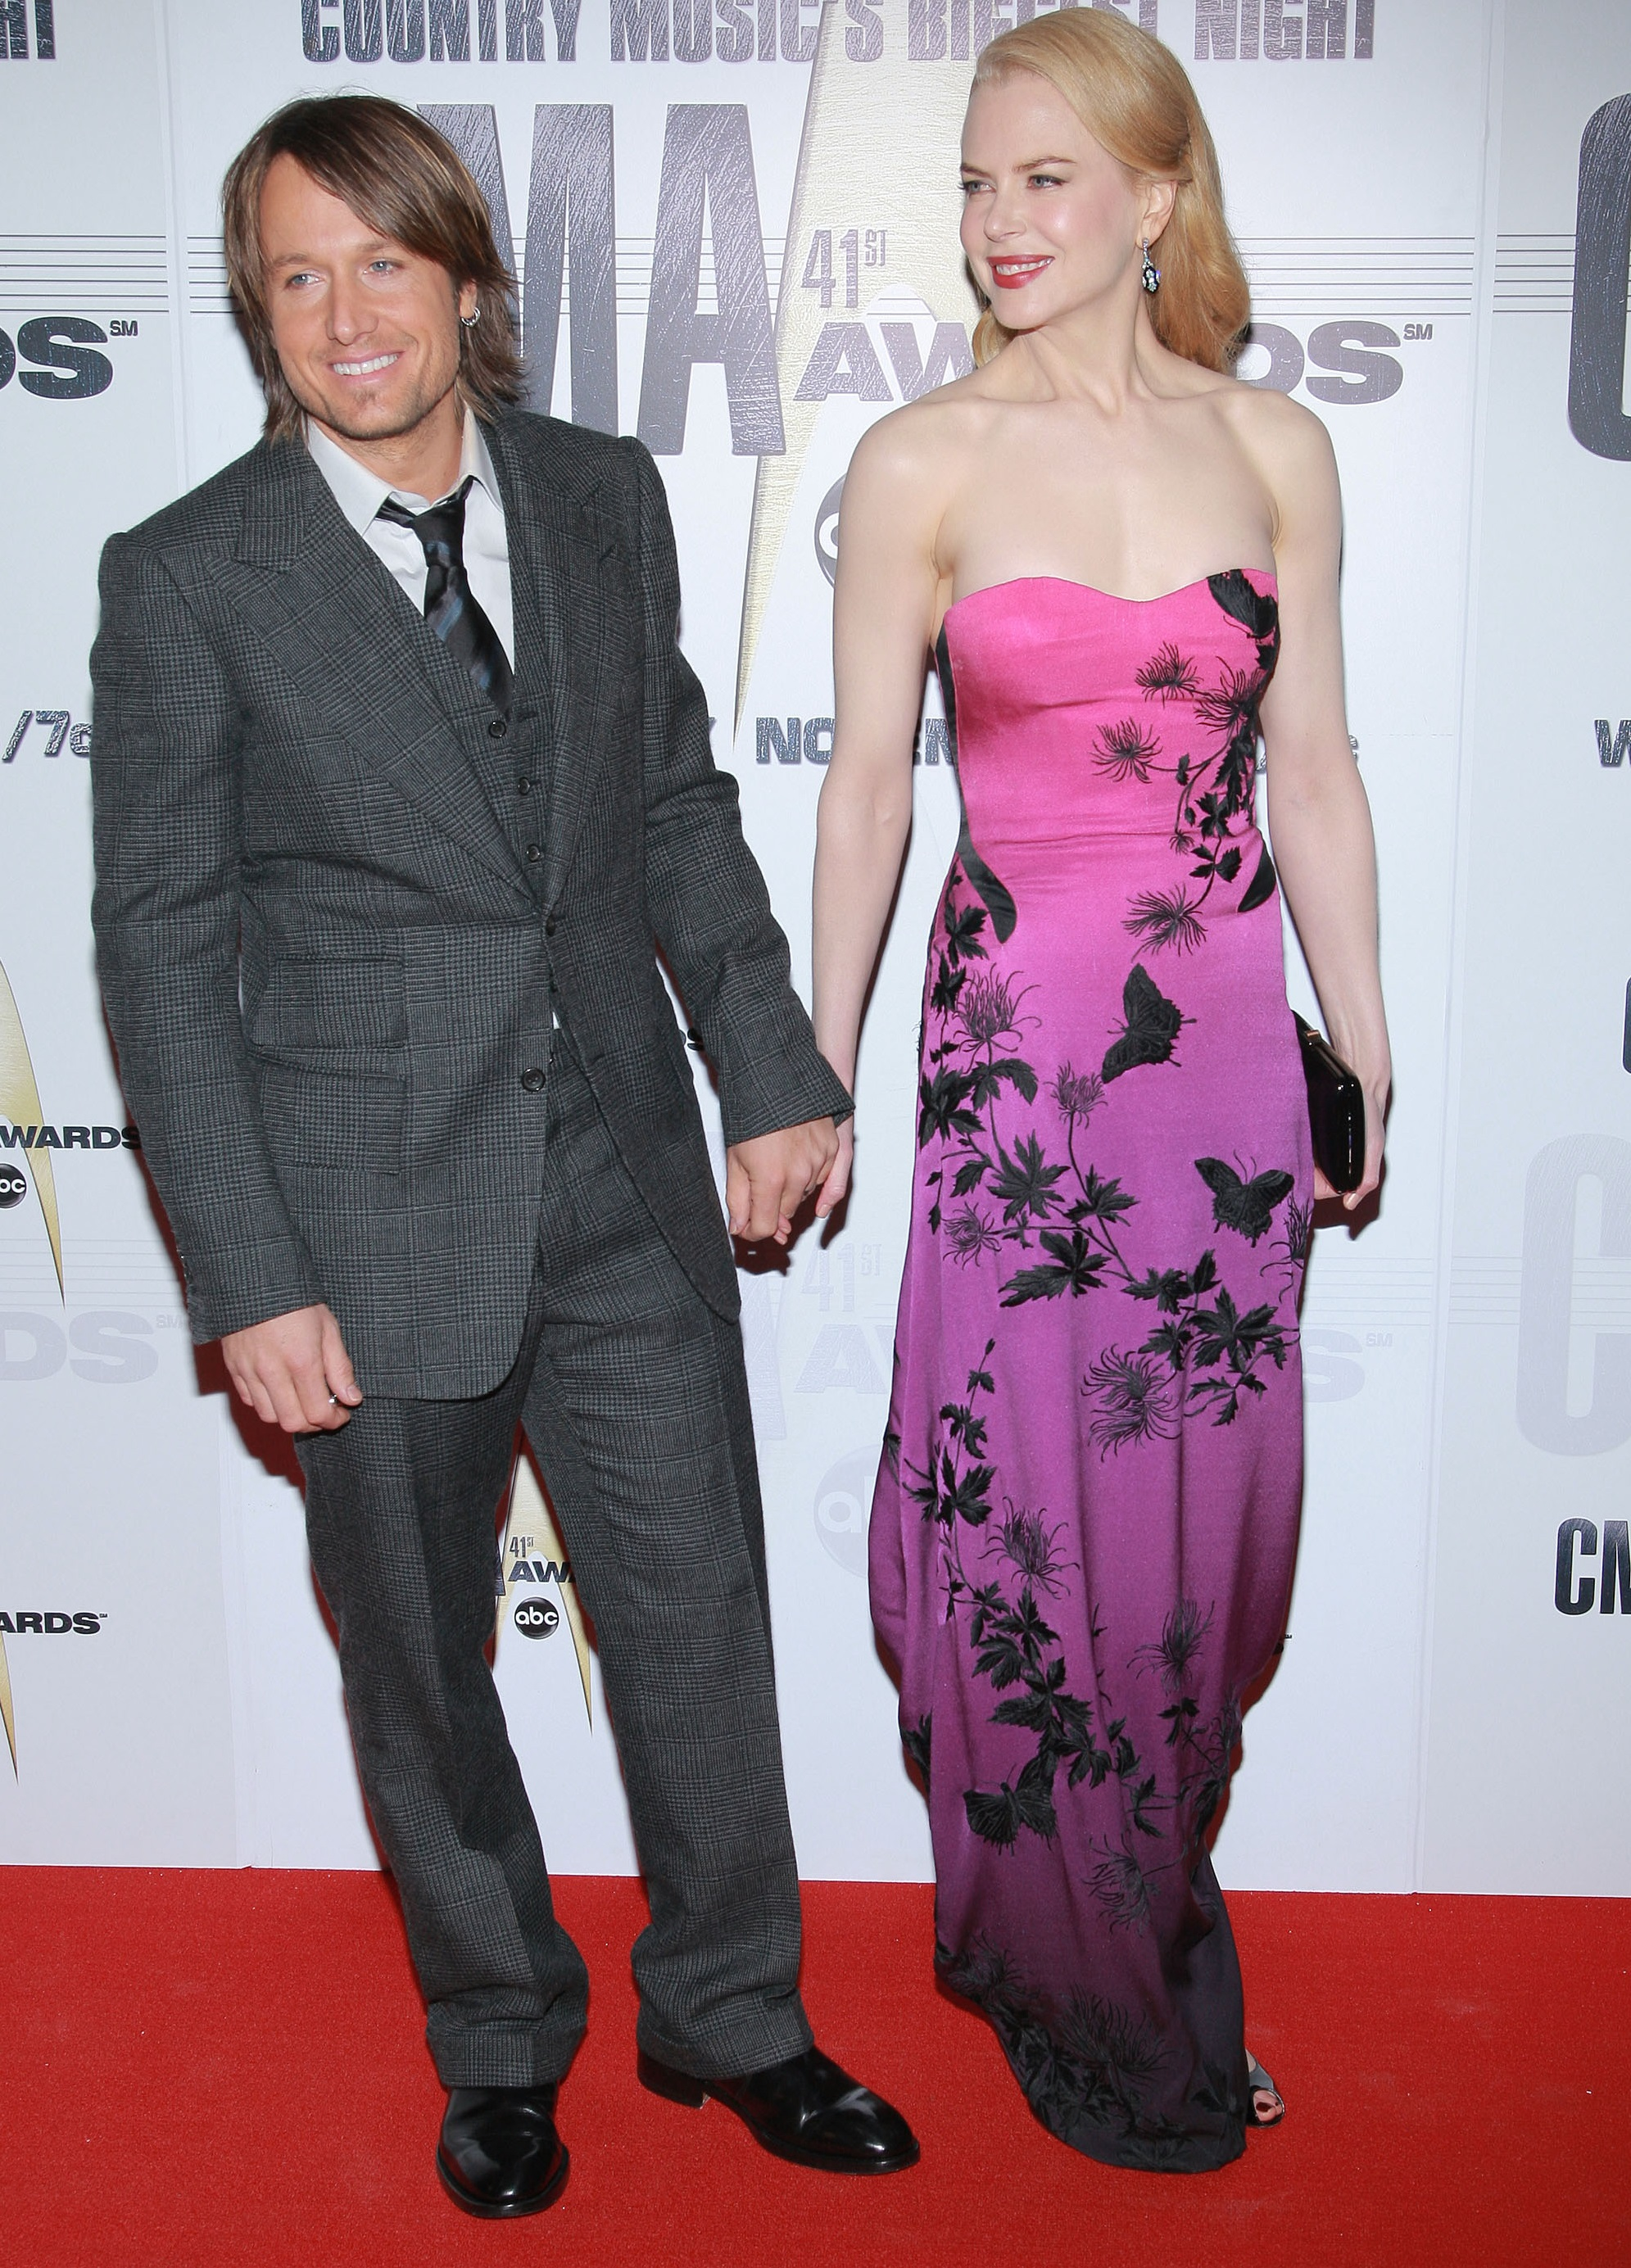 Keith Urban and Nicole Kidman arrive at the 41st Annual CMA Awards at the Sommet Center on November 7, 2007 in Nashville TN; Photo by Michael Loccisano/FilmMagic